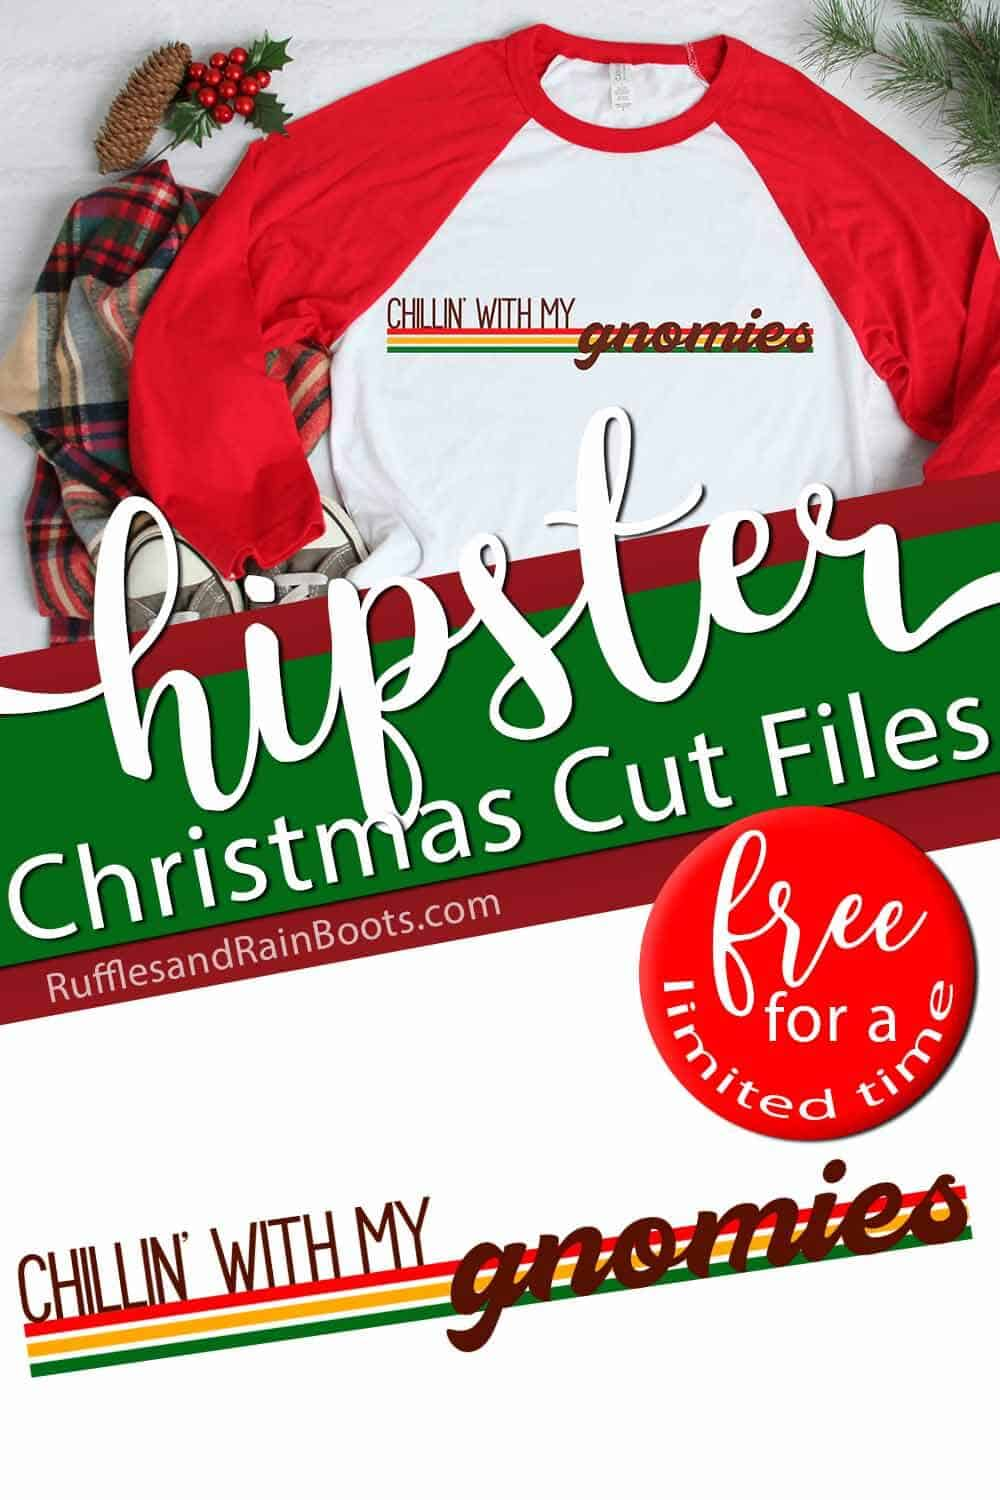 photo collage of vintage style free Christmas SVG set with text which reads hipster christmas cut files free for a limited time